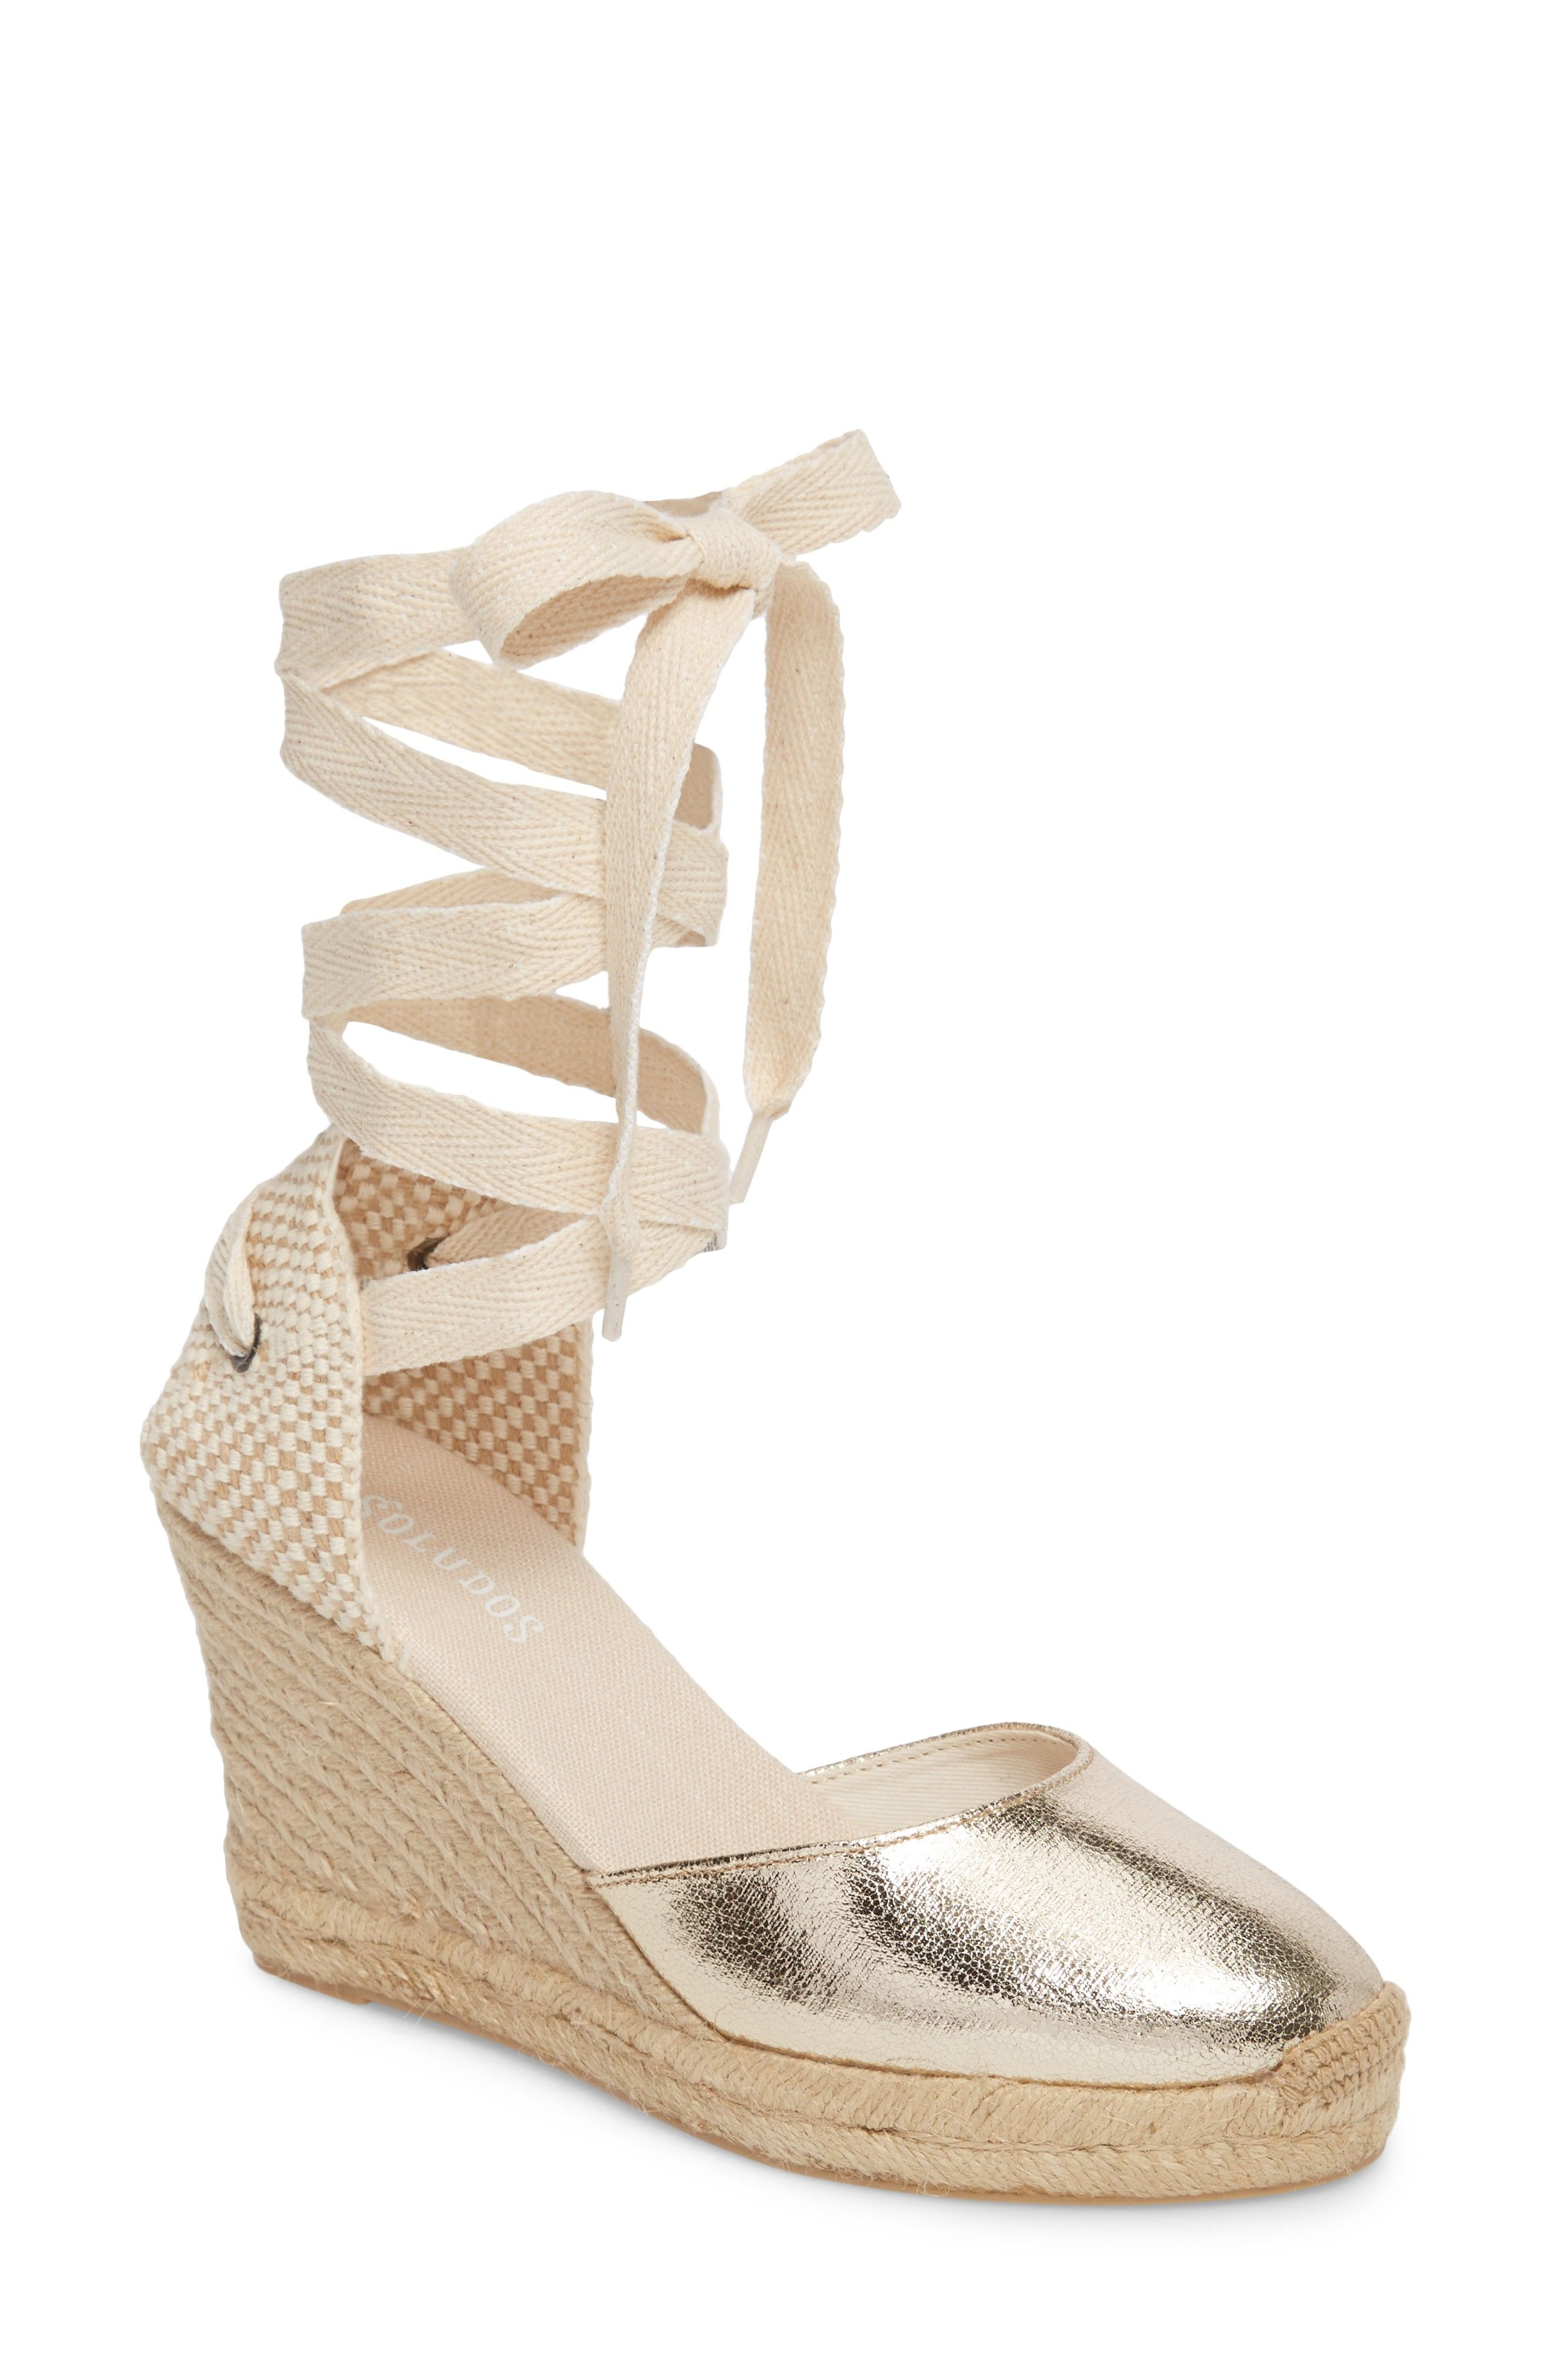 31986b81fc7 Buy SOLUDOS Wedge Lace-Up Espadrille Sandal online. New SOLUDOS Sandals.    94.95